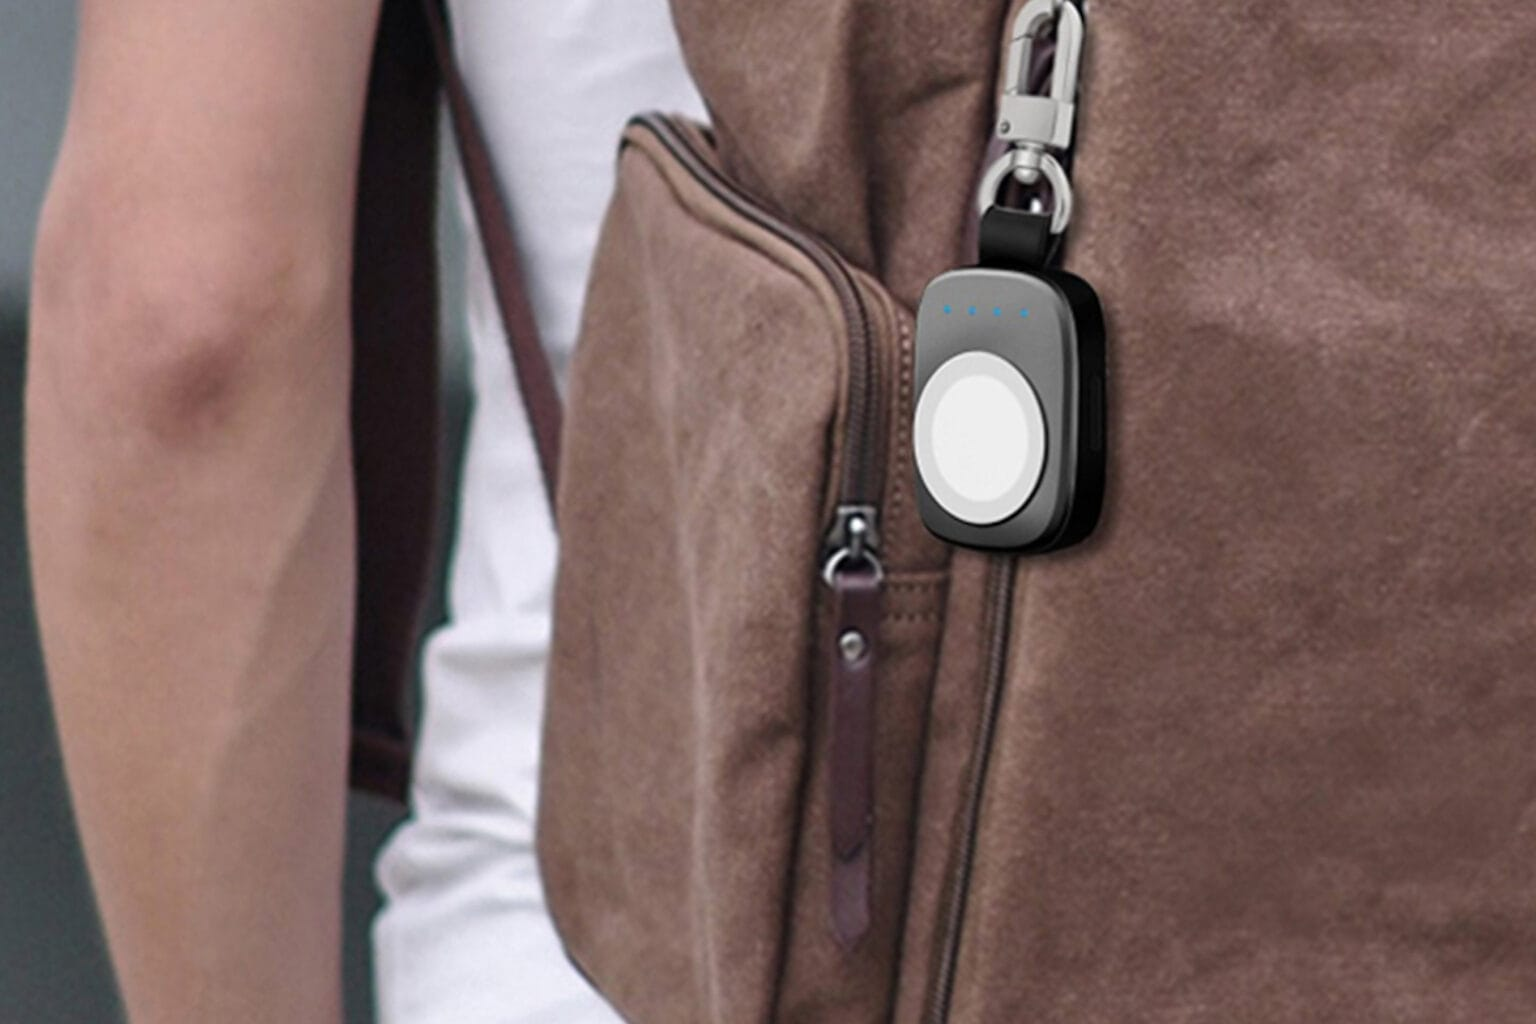 This keychain powers up your apple watch.